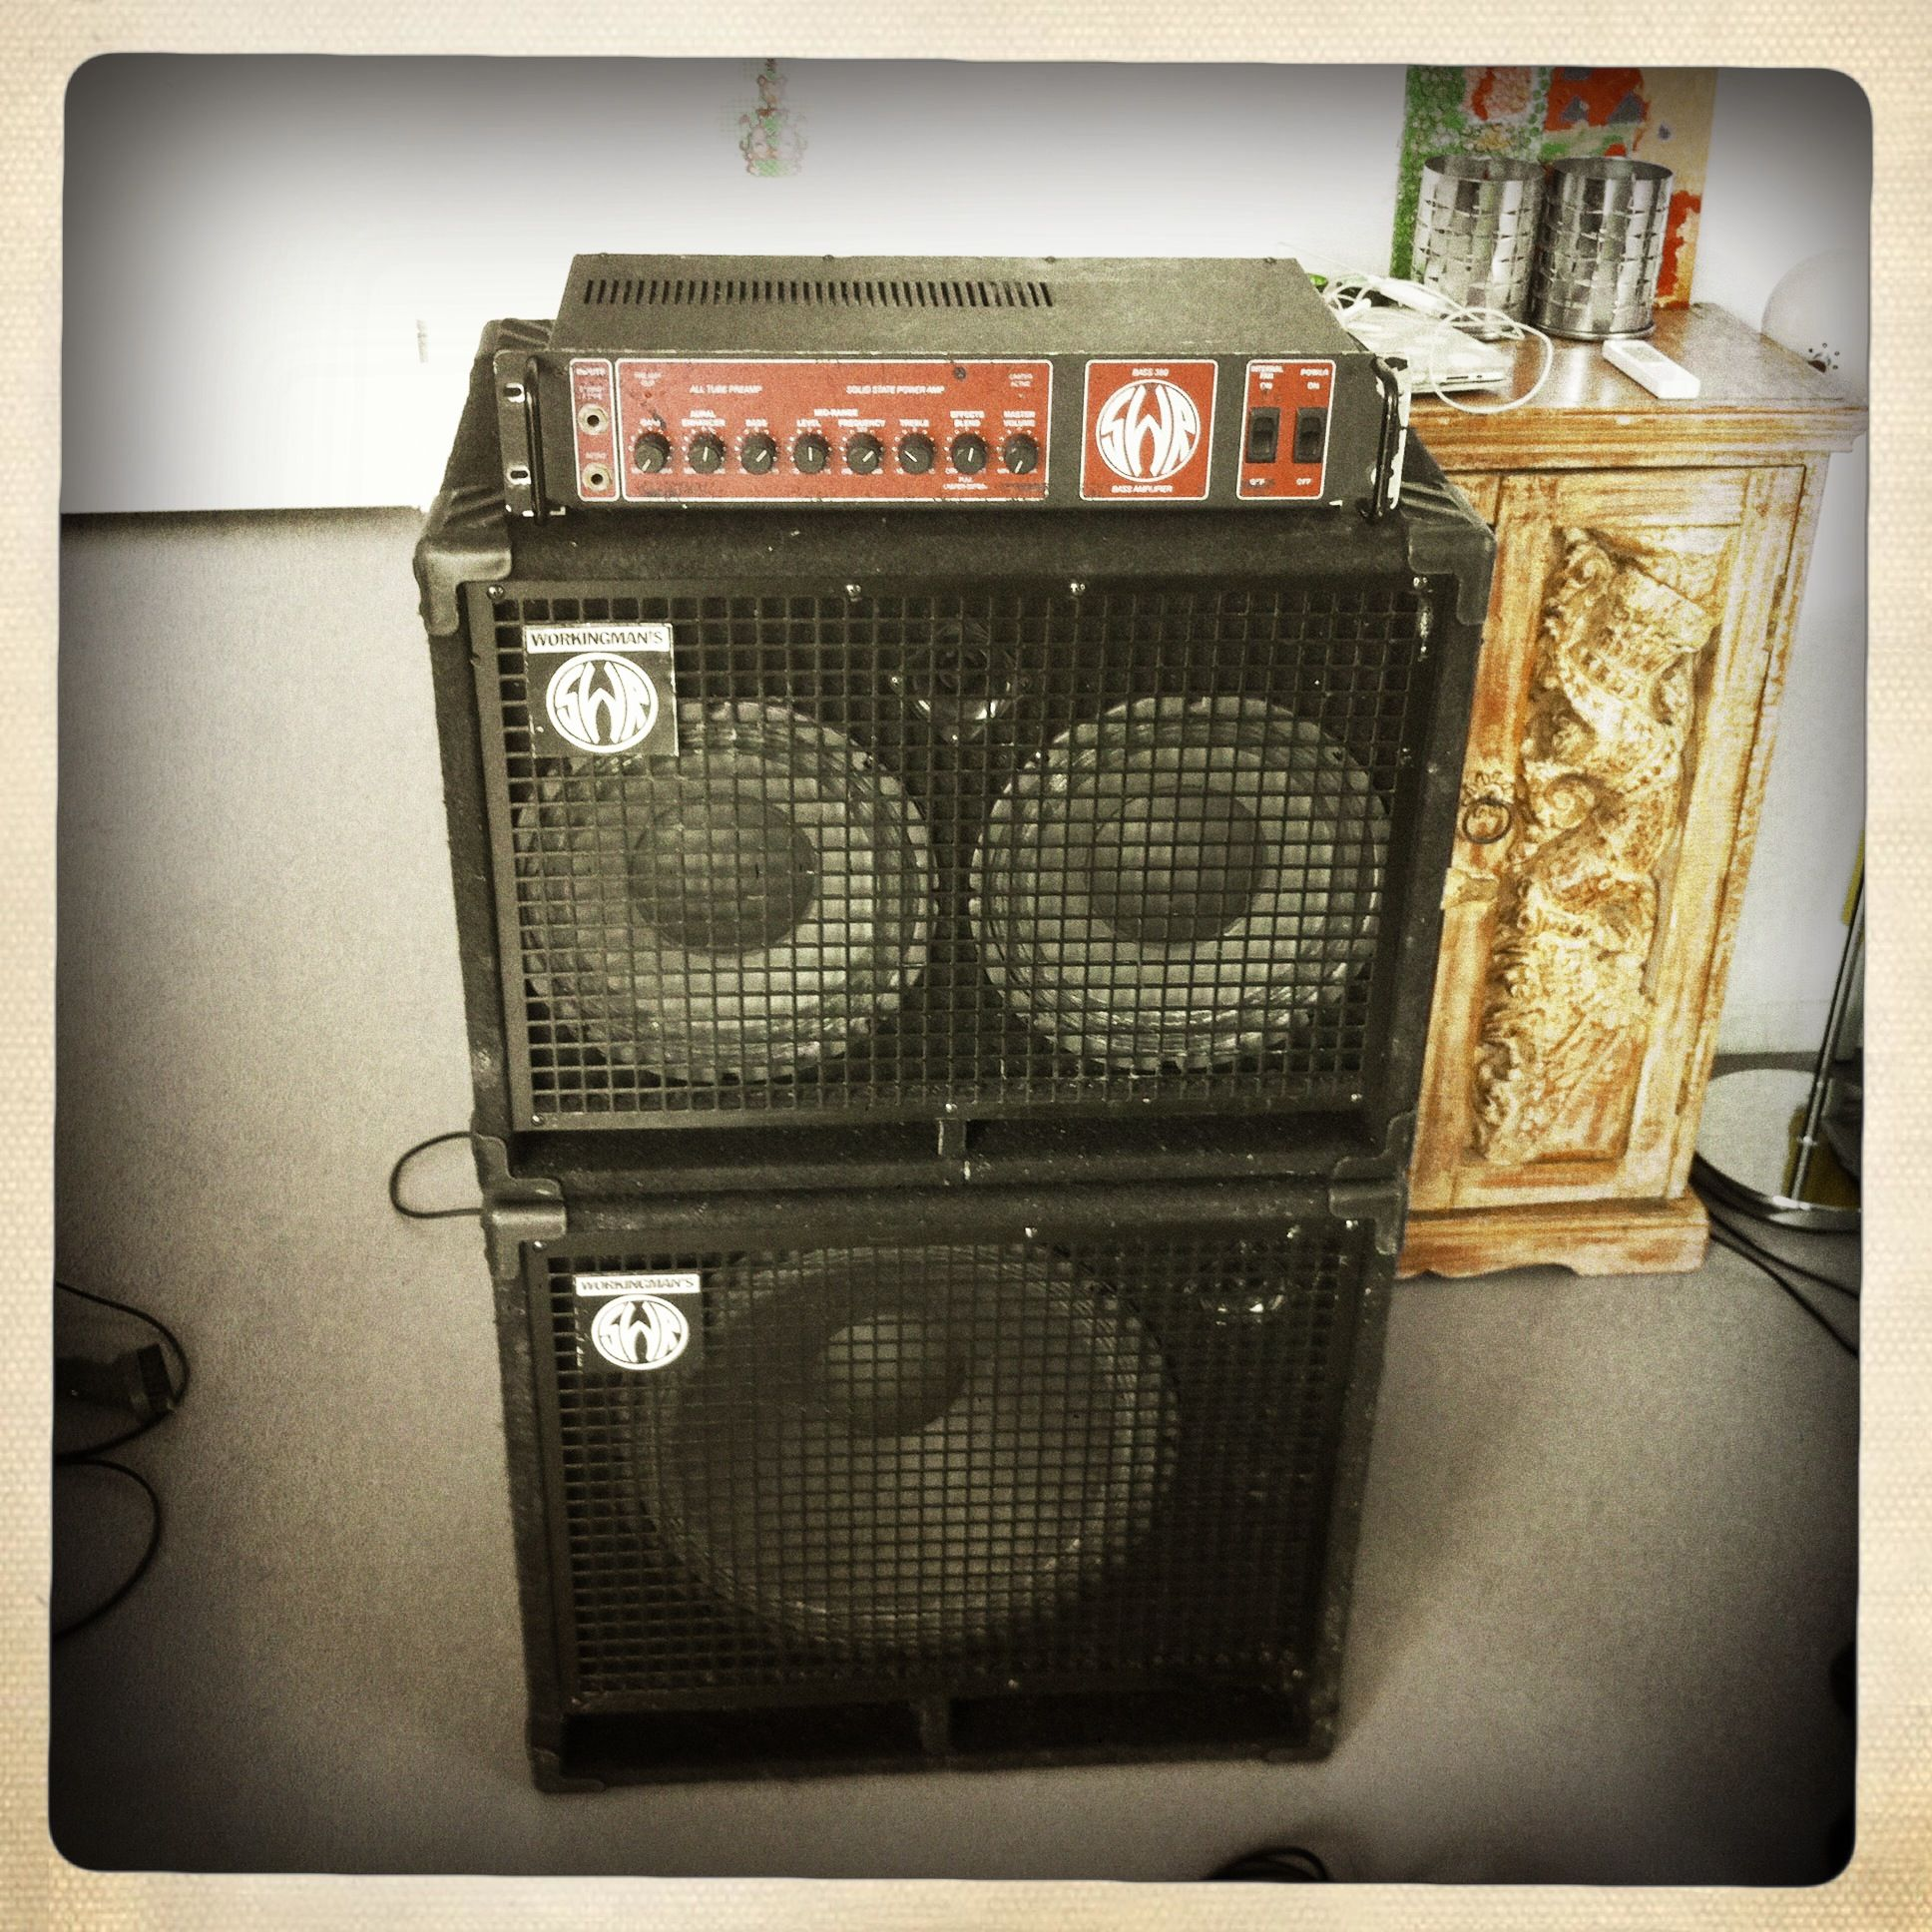 Head Swr Bass 350 Speaker Cabinets Swr Workingman S Series 2 X 10 1 X 15 All Combined Together Also Known As Das Erdbeben Bass Amps Cars Music Guitar Rig